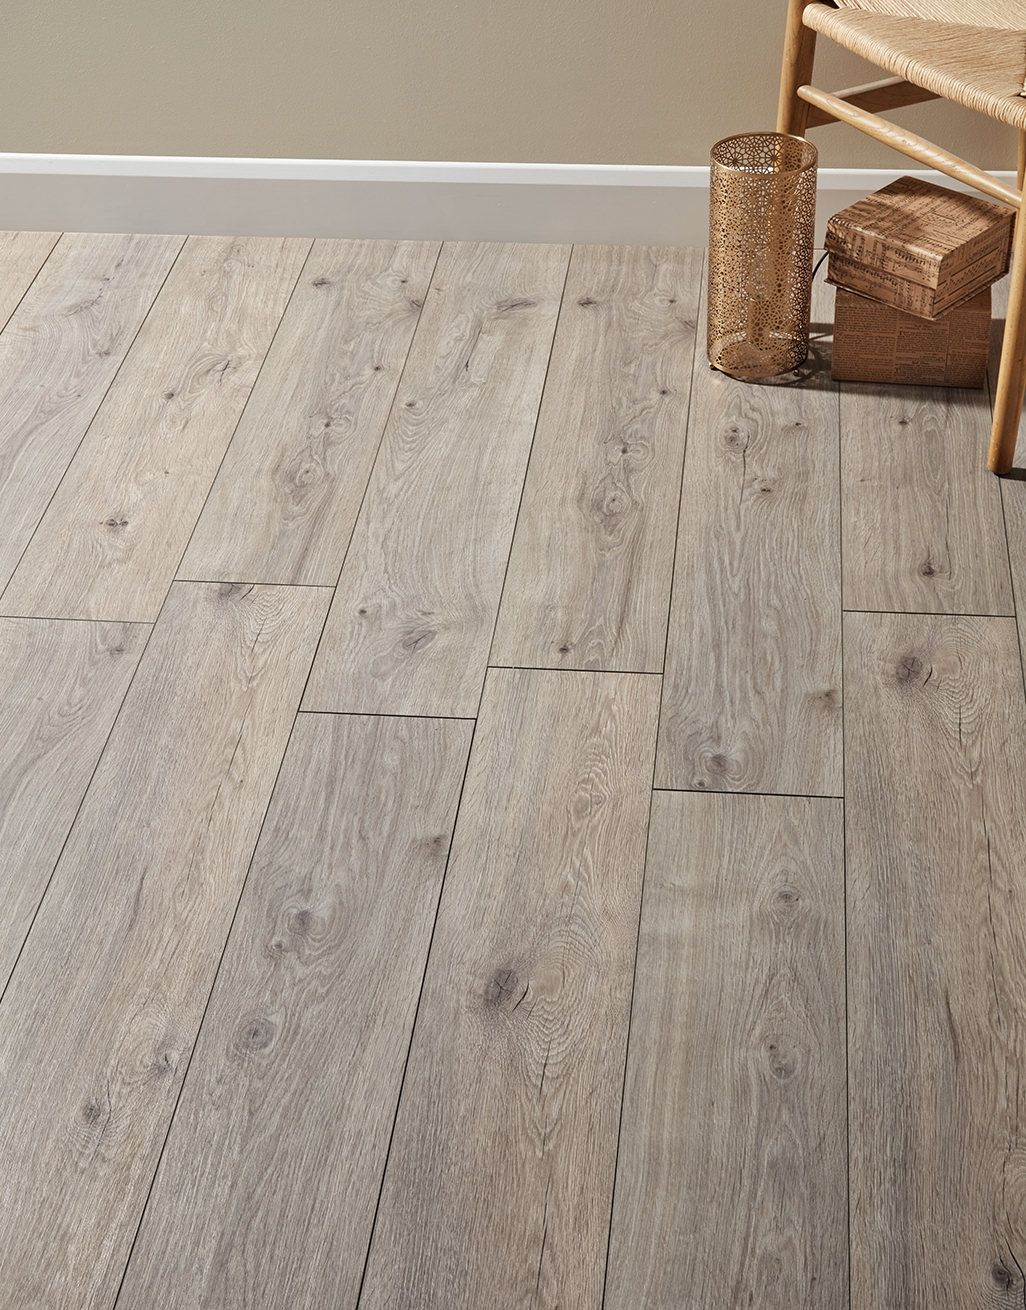 Cottage Distressed Grey Oak Laminate Flooring (With